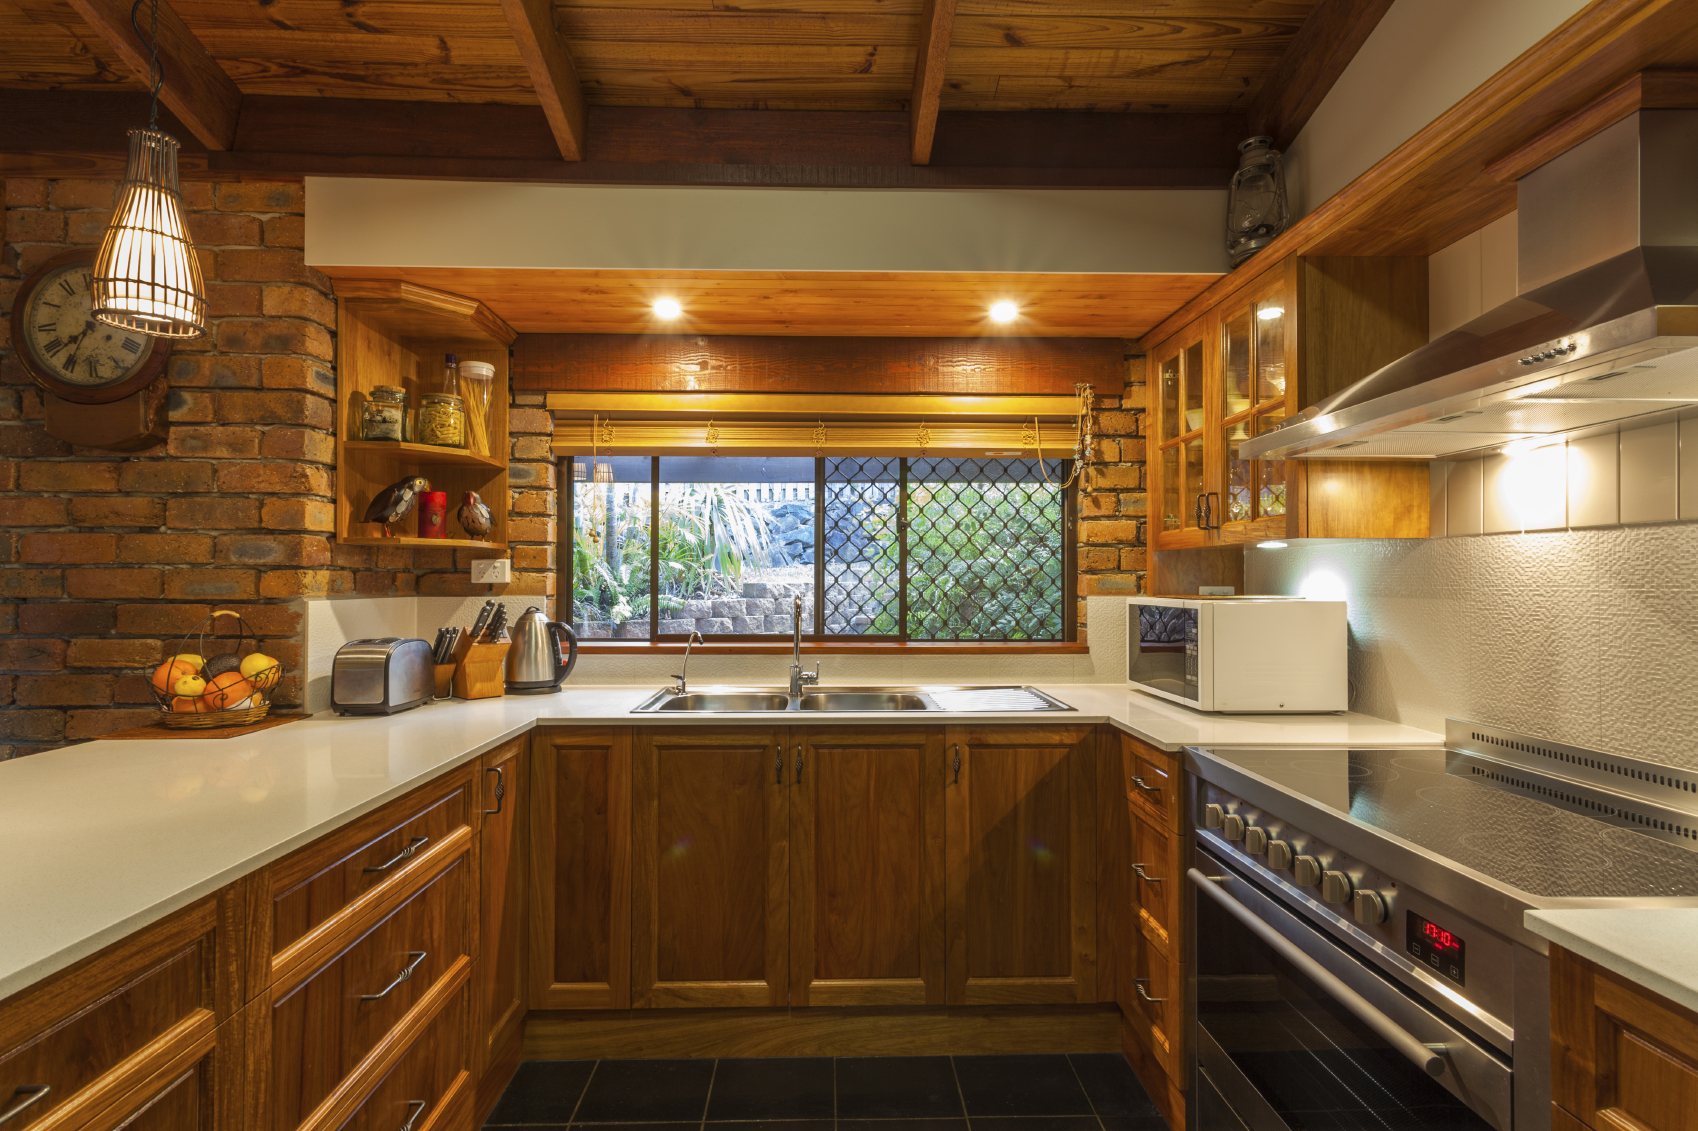 kitchen remodeling ideas  Apps on Google Play